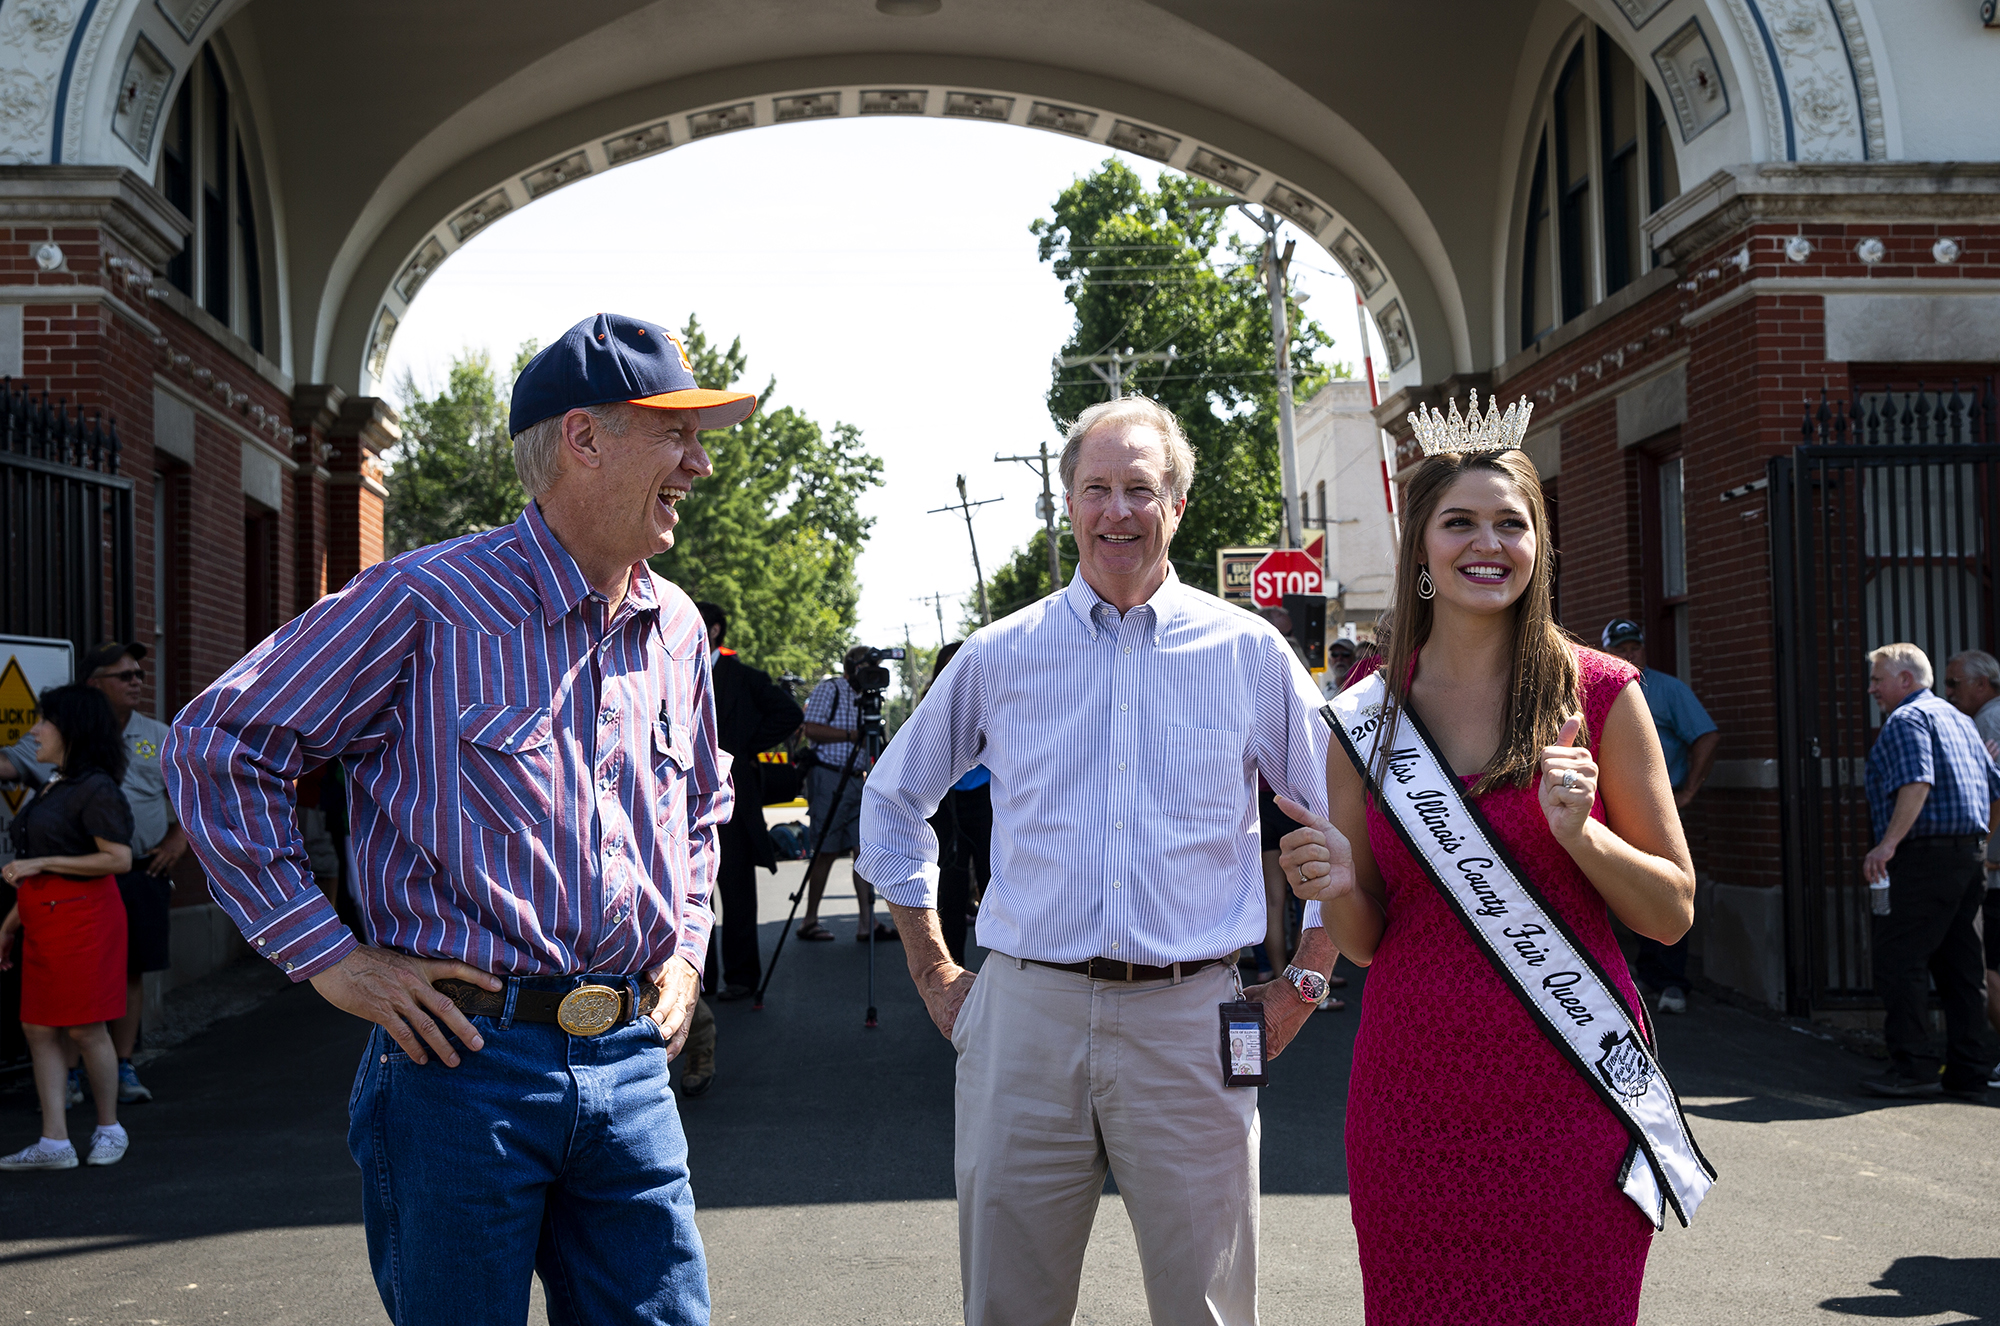 Gov. Bruce Rauner, talks with Jeff Heck from the Illinois Capital Development Board and Samantha Hasselbring, Miss Illinois County Fair Queen, after cutting the ribbon to officially open the 2018 Illinois State Fair Thursday, Aug. 9, 2018 on the Illinois State Fairgrounds in Springfield, Ill. [Rich Saal/The State Journal-Register]